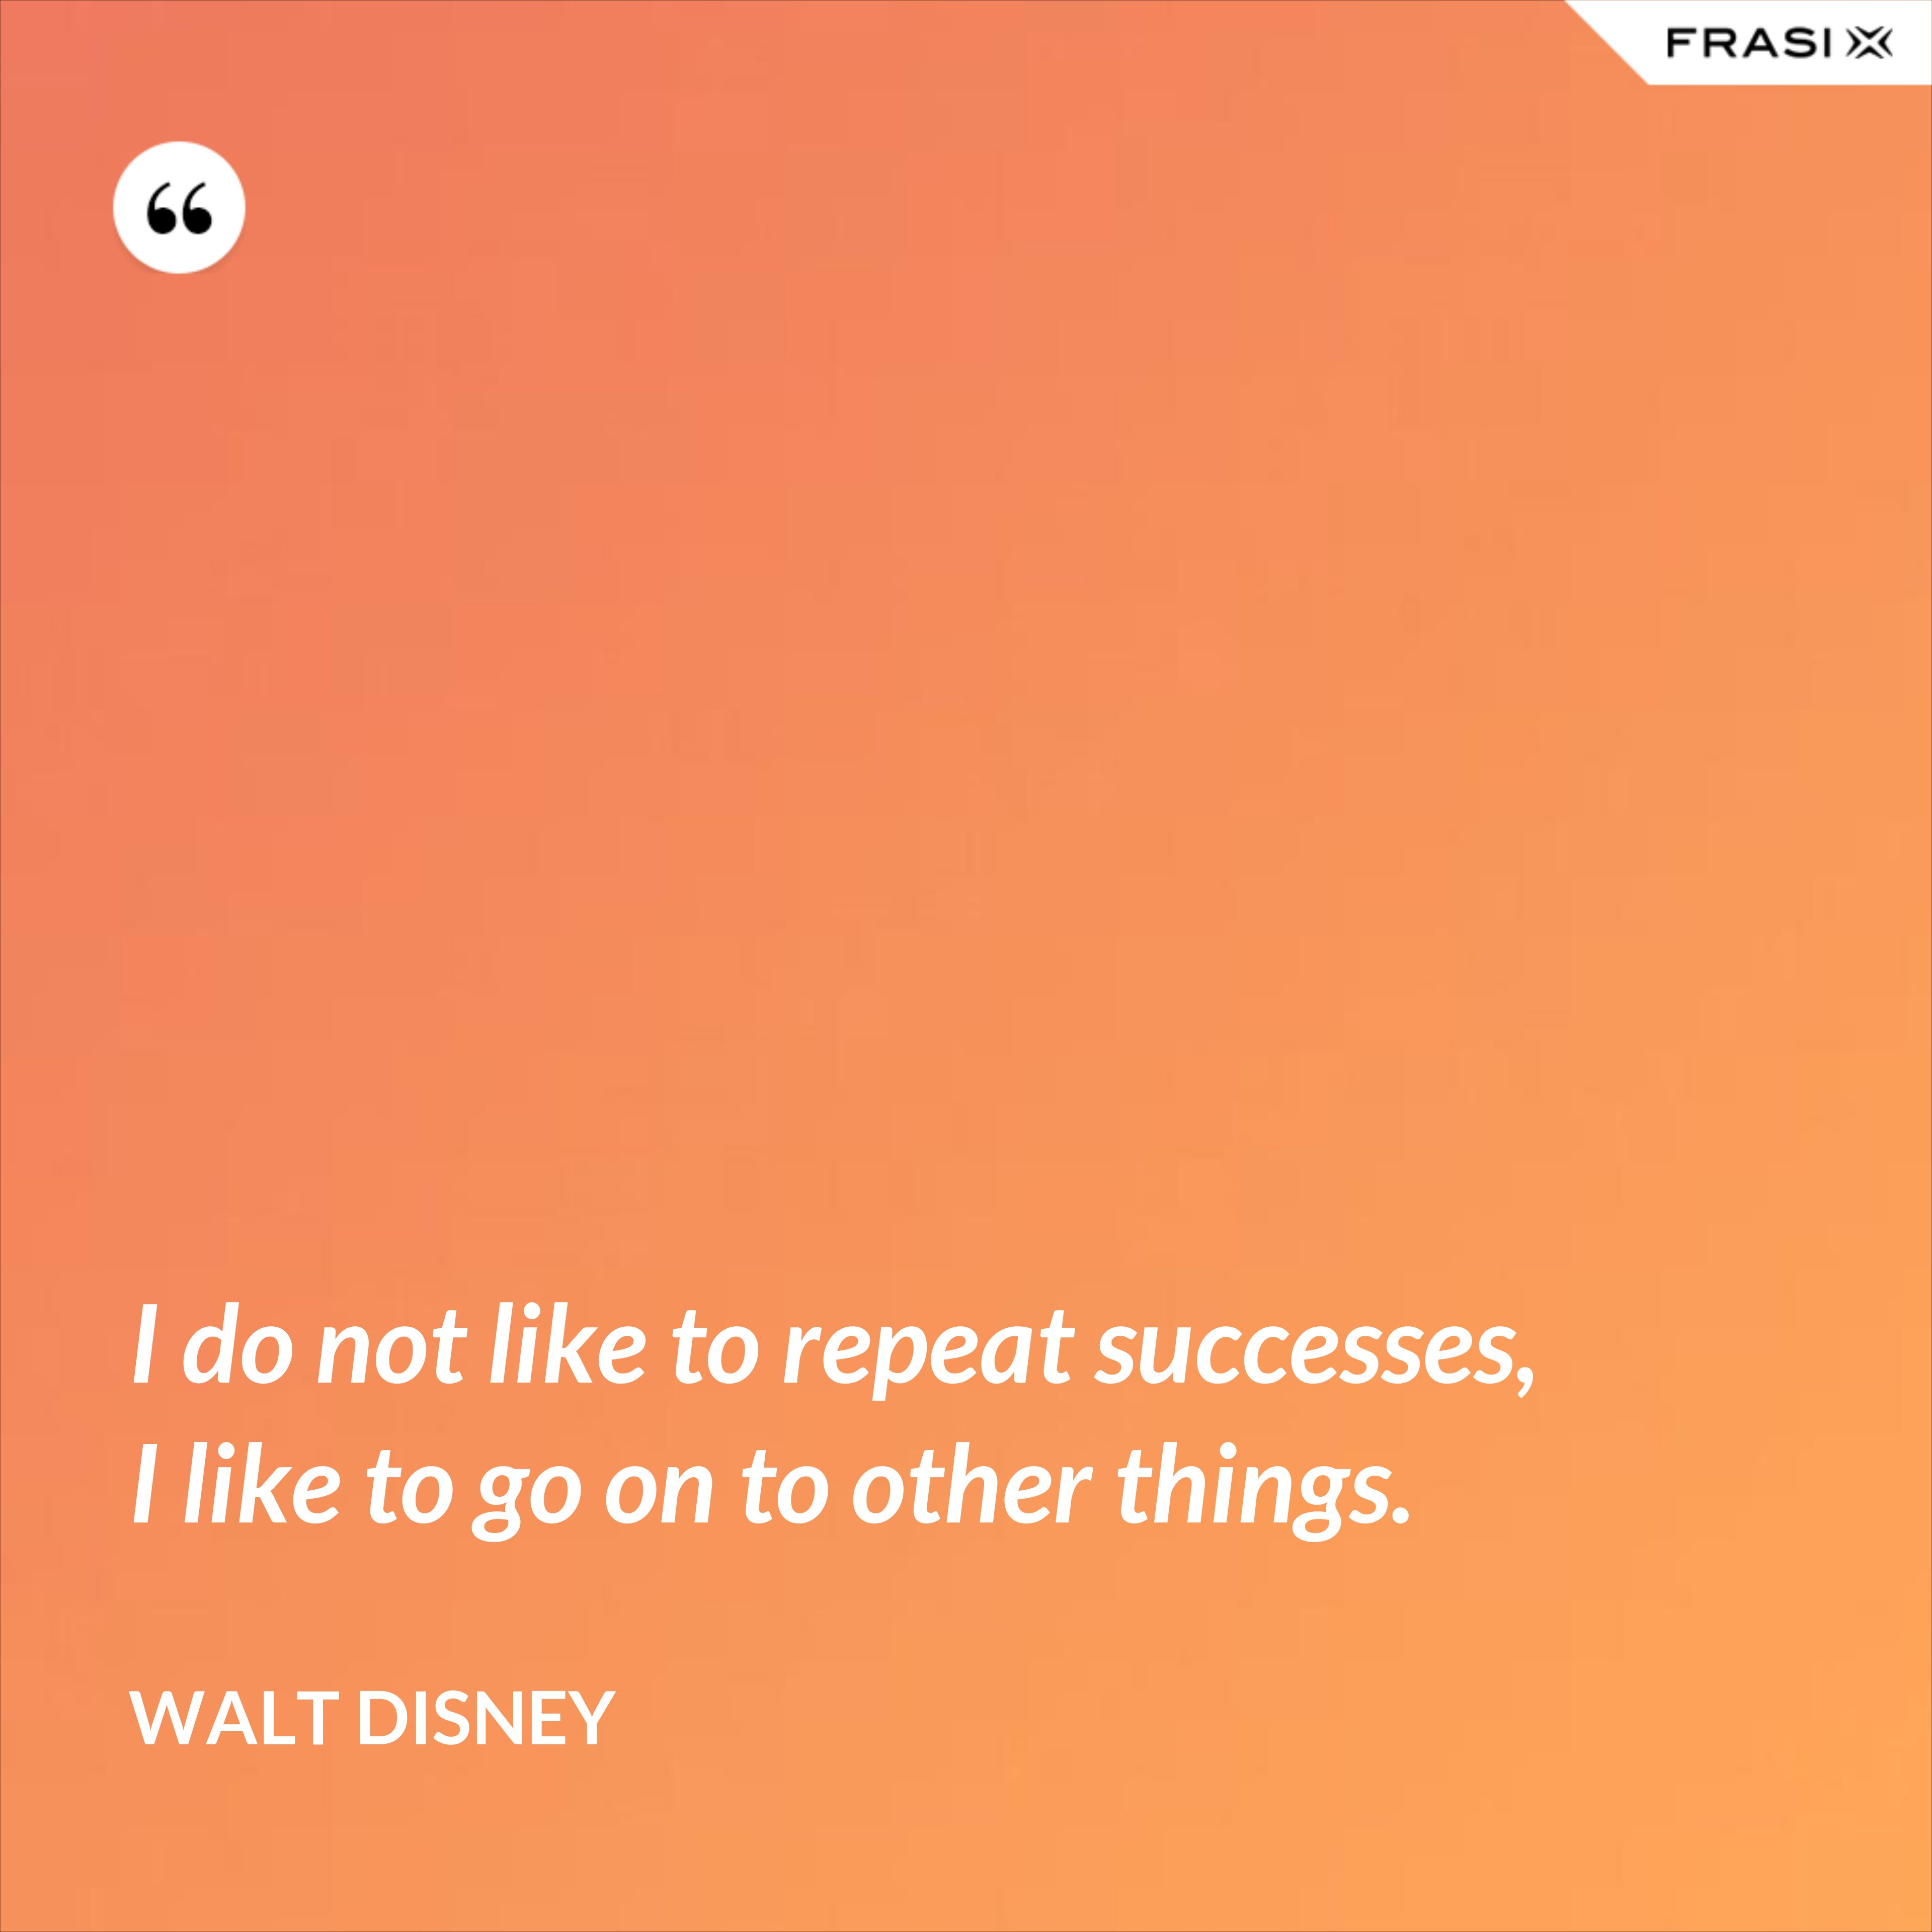 I do not like to repeat successes, I like to go on to other things. - Walt Disney